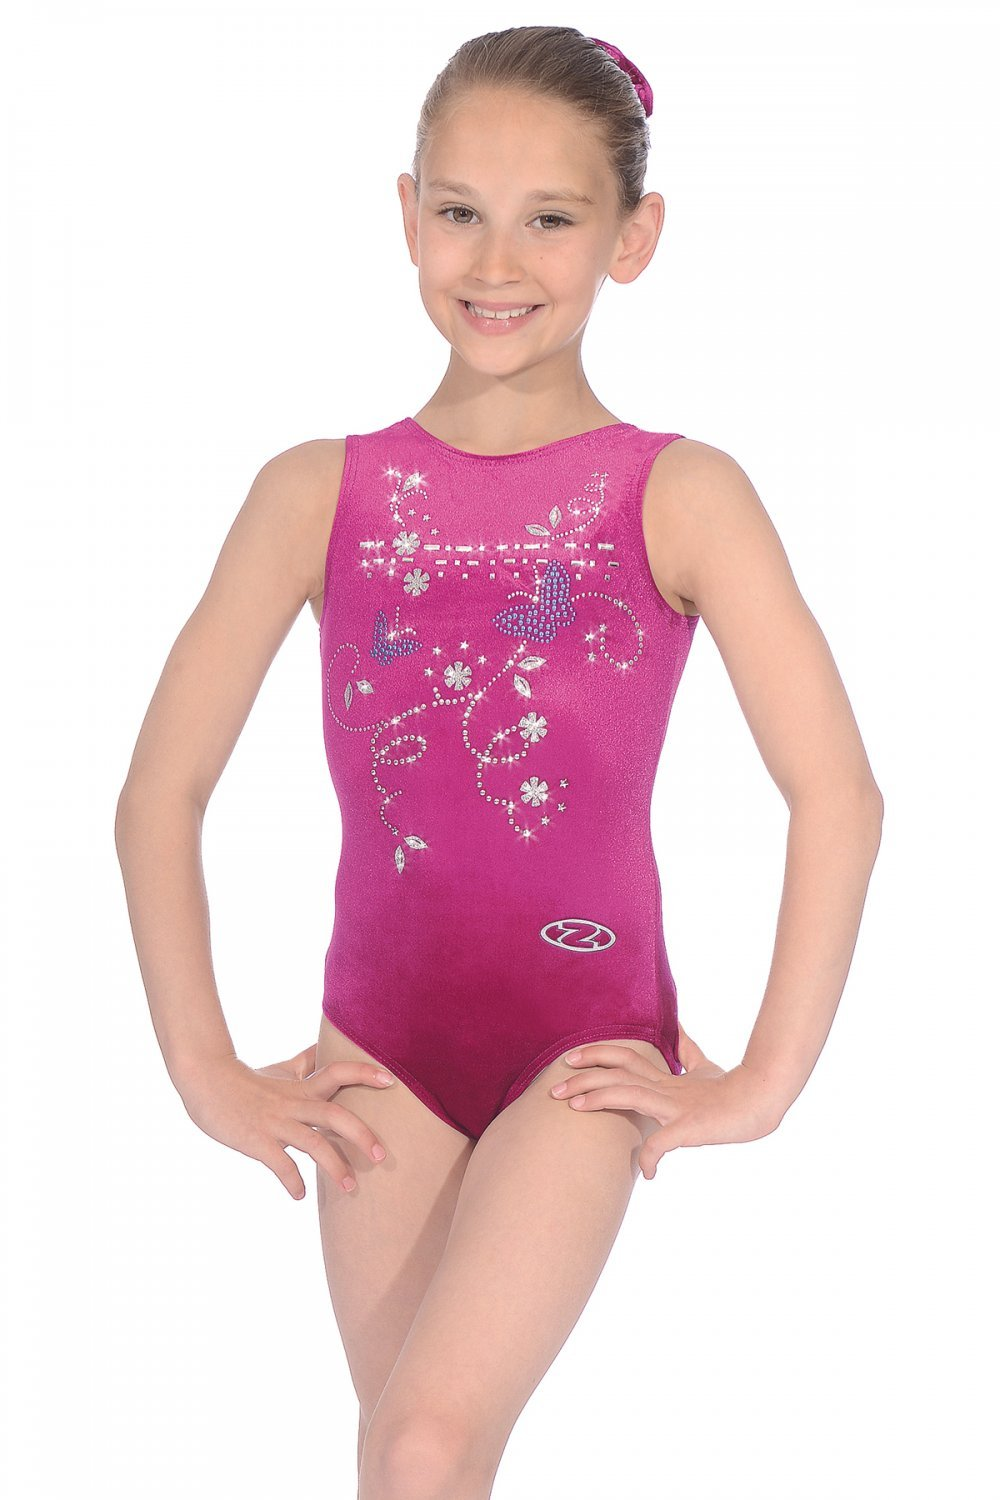 The Zone Panache Butterfly Motif Sleeveless Gymnastics Leotard